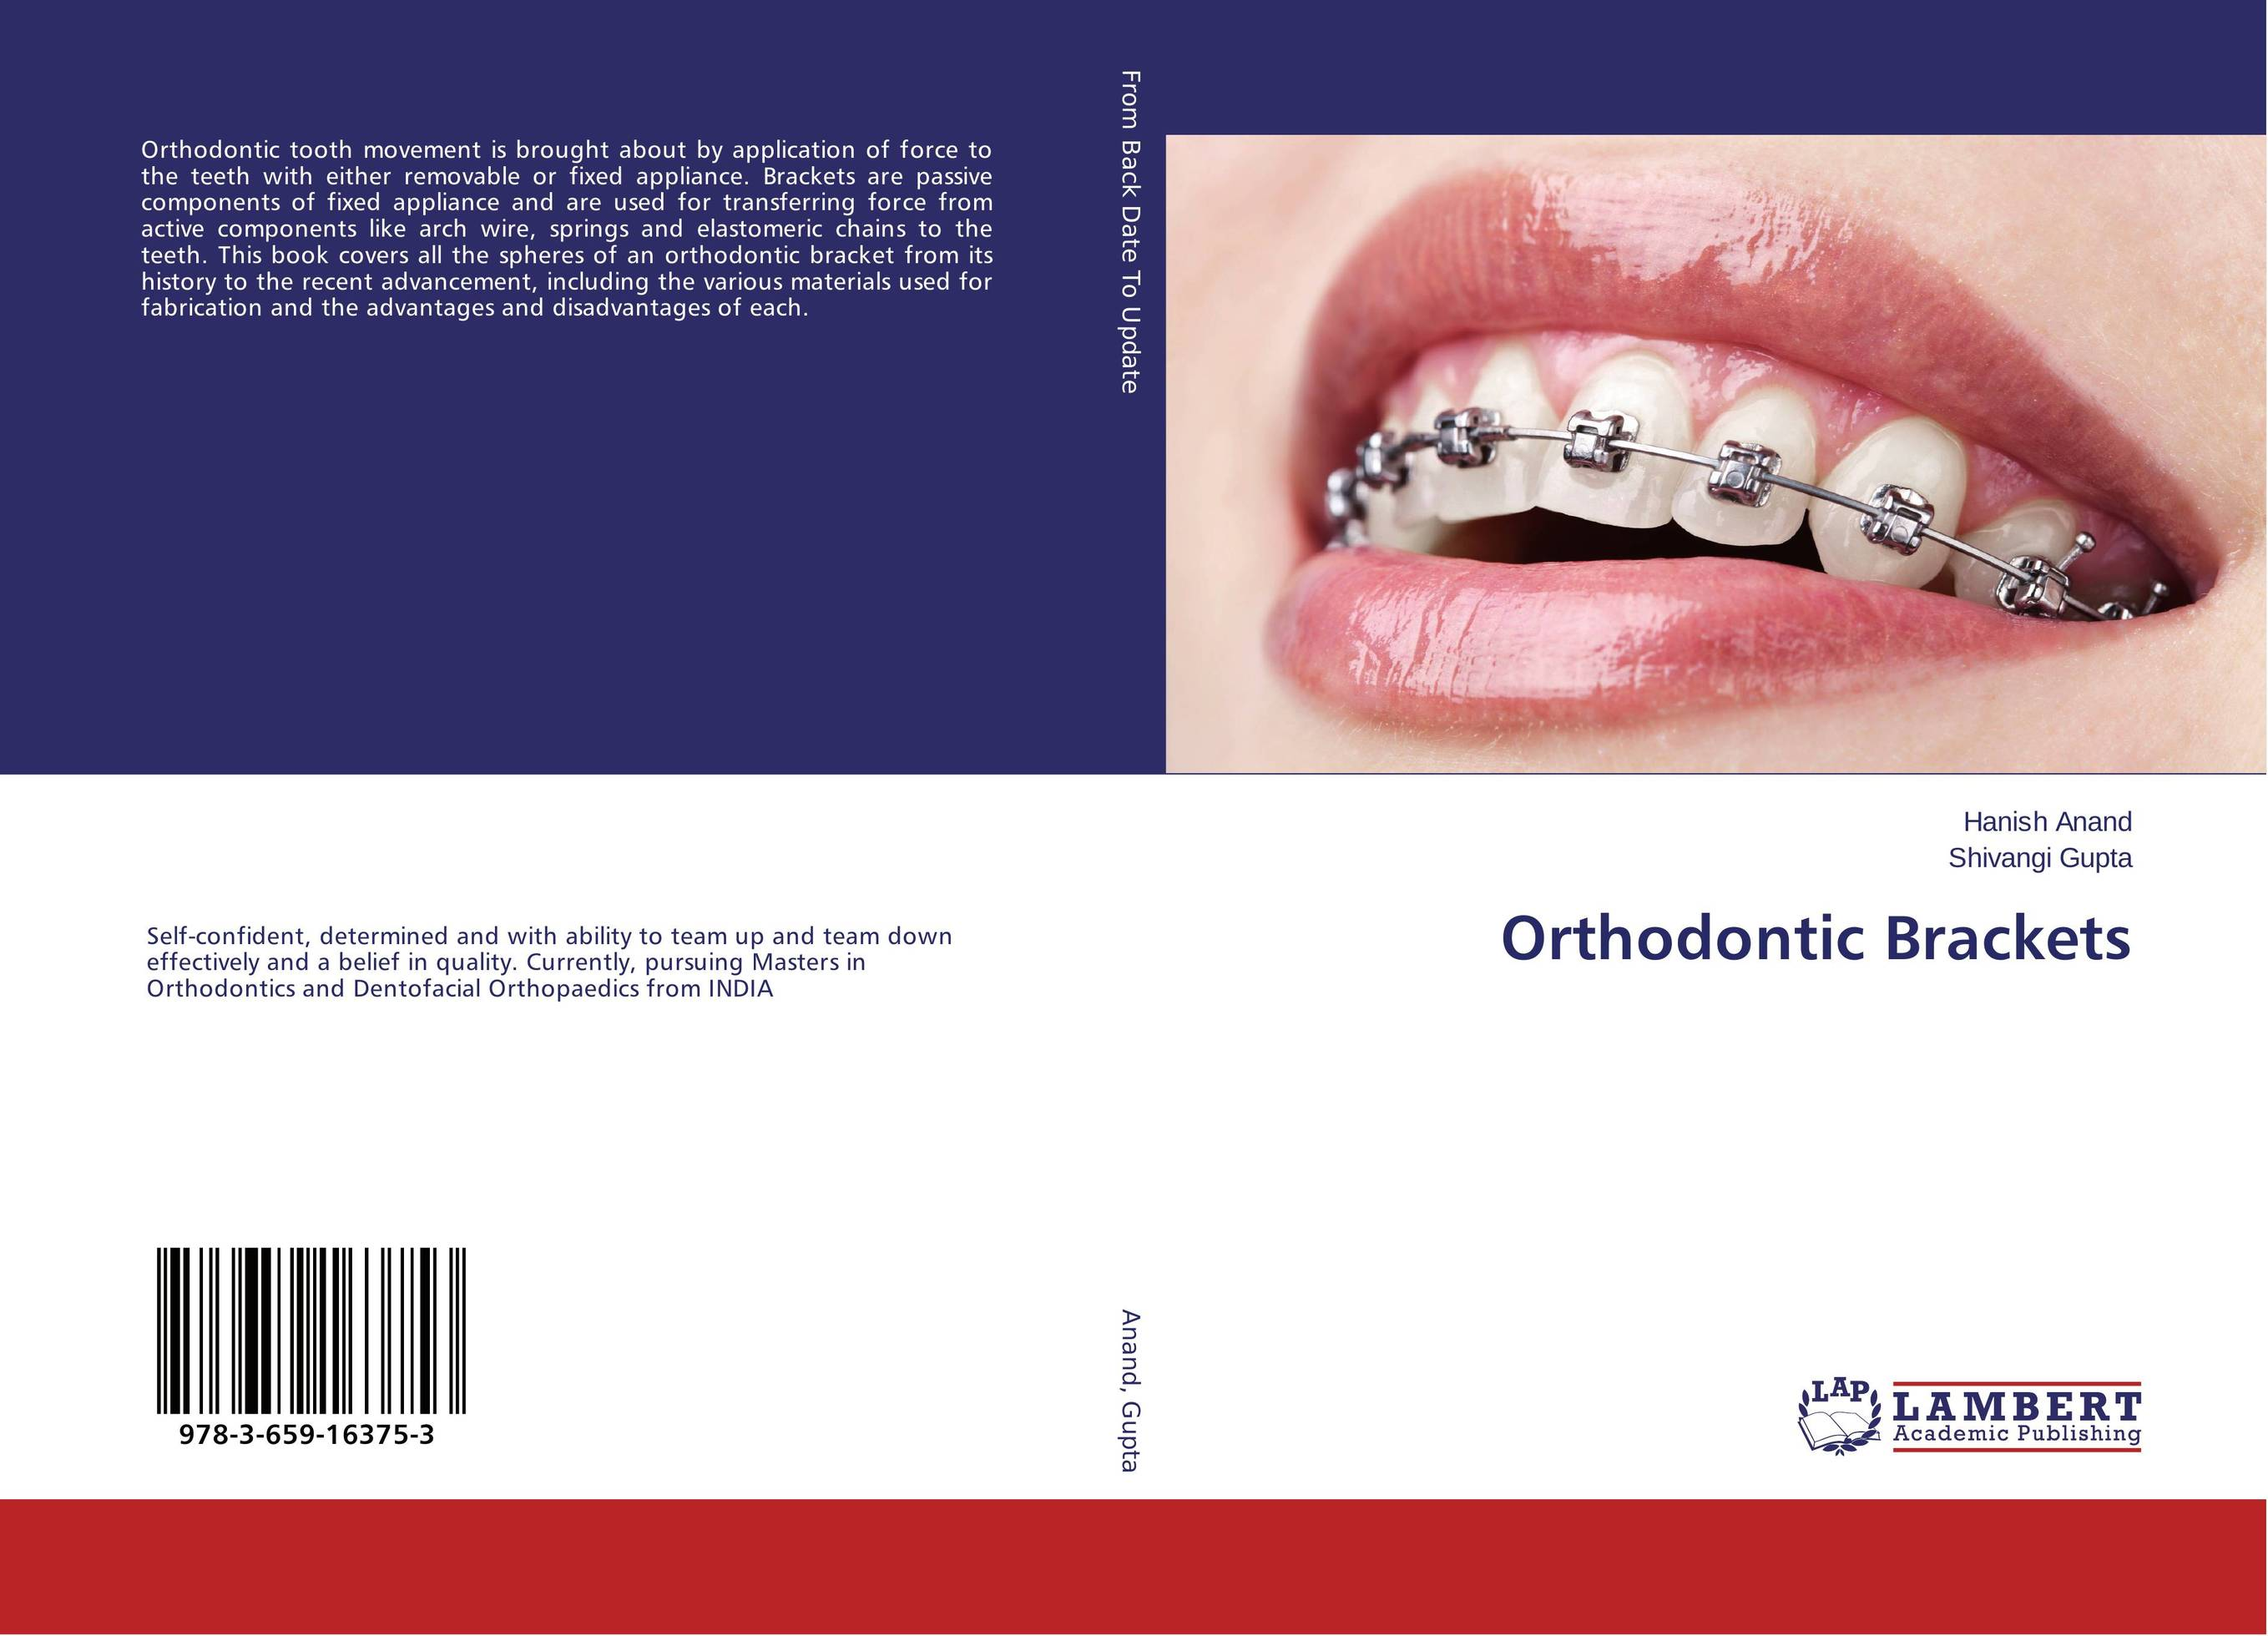 Orthodontic Brackets 1 pc dental orthodontic study model transparent teeth malocclusion orthodontic model with colorful brackets